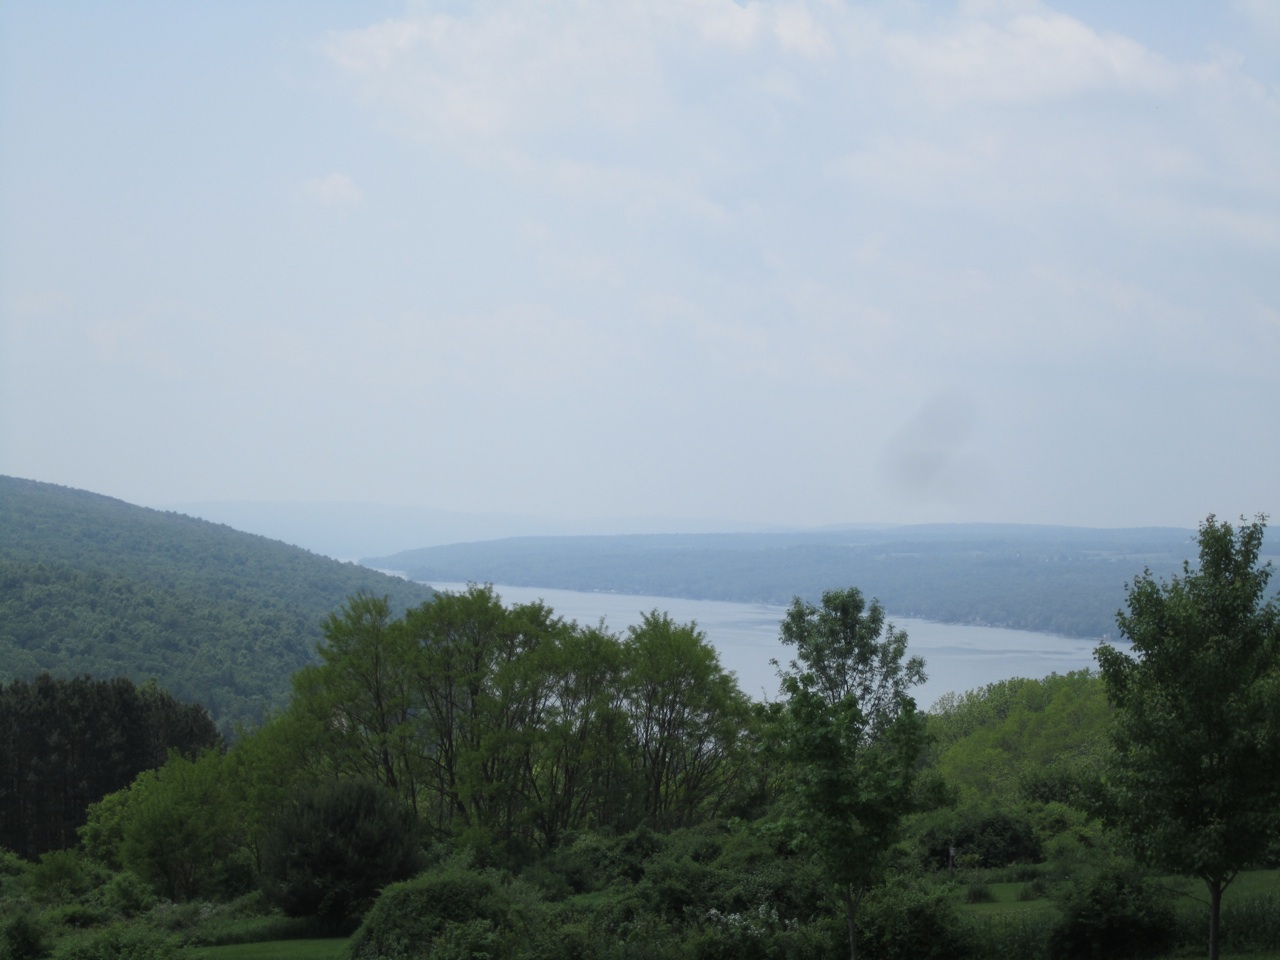 View Of One Of The Tips Of Keuka Lake